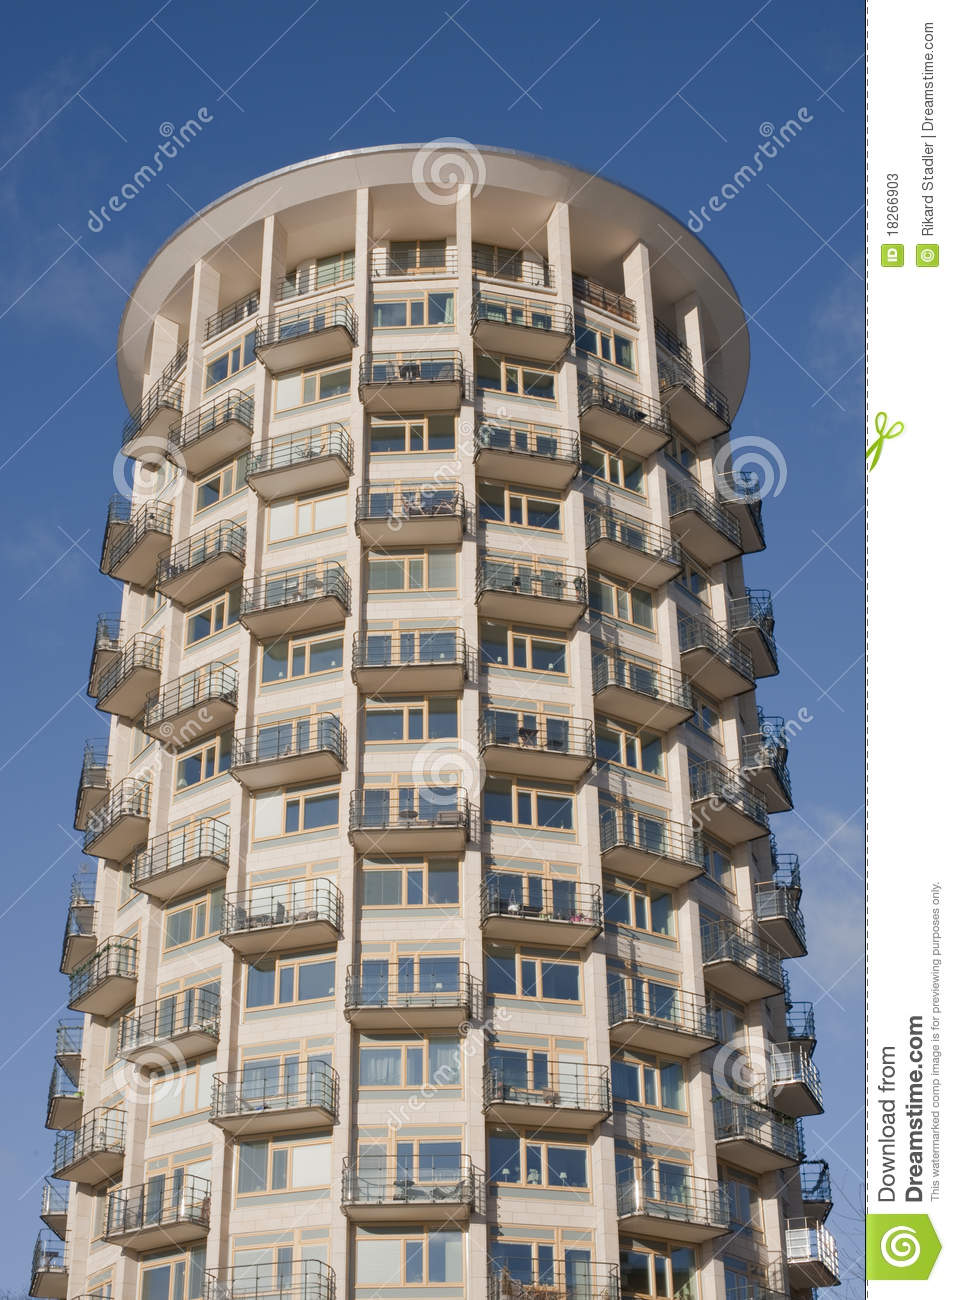 Plans For Building A New House Circular Apartment House Stock Image. Image Of Building